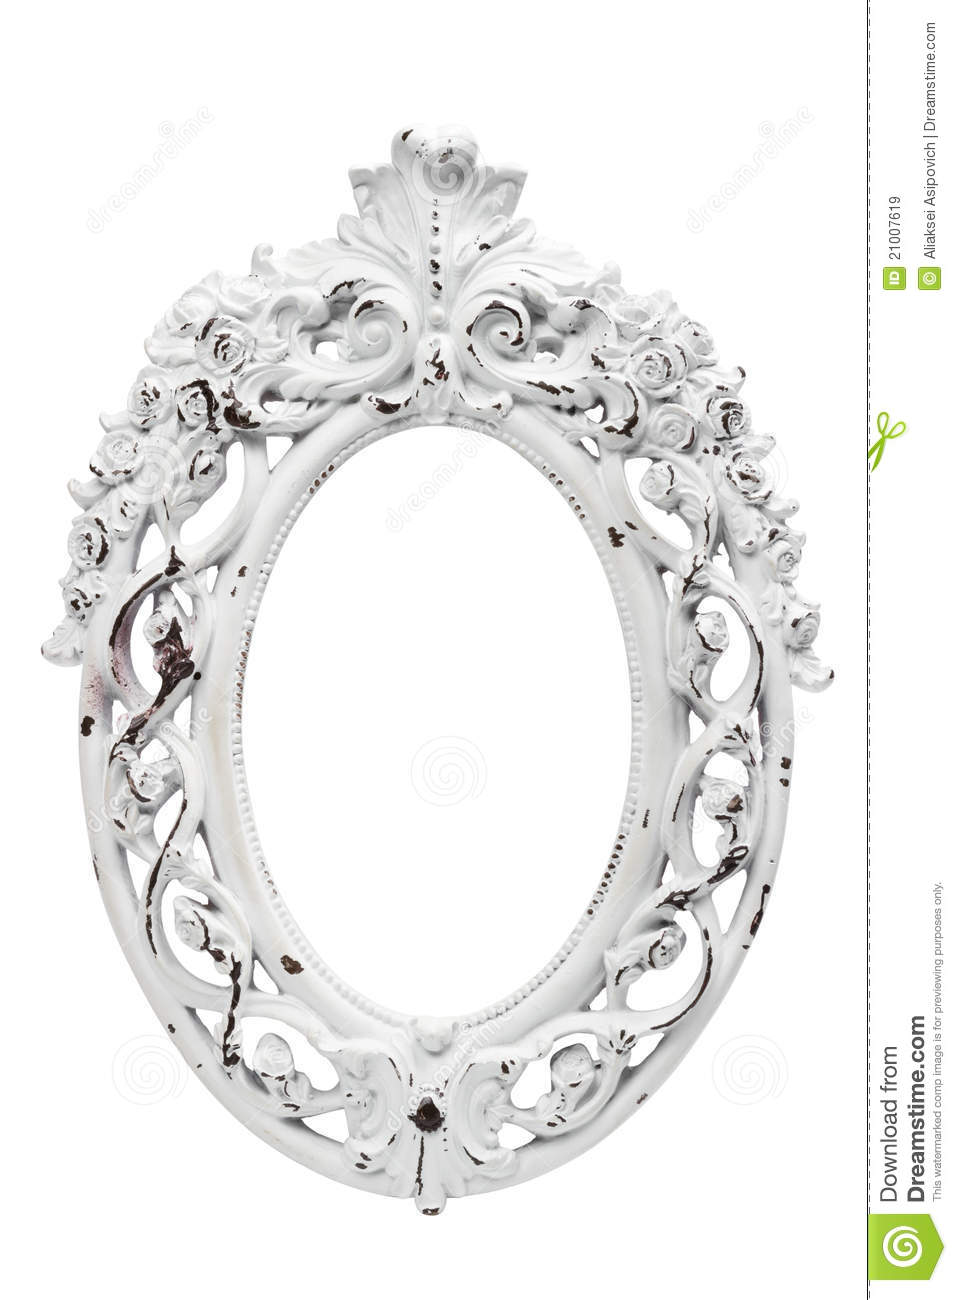 white vintage picture frames gallery craft decoration ideas ornate vintage white frame stock image image of - White Vintage Picture Frames